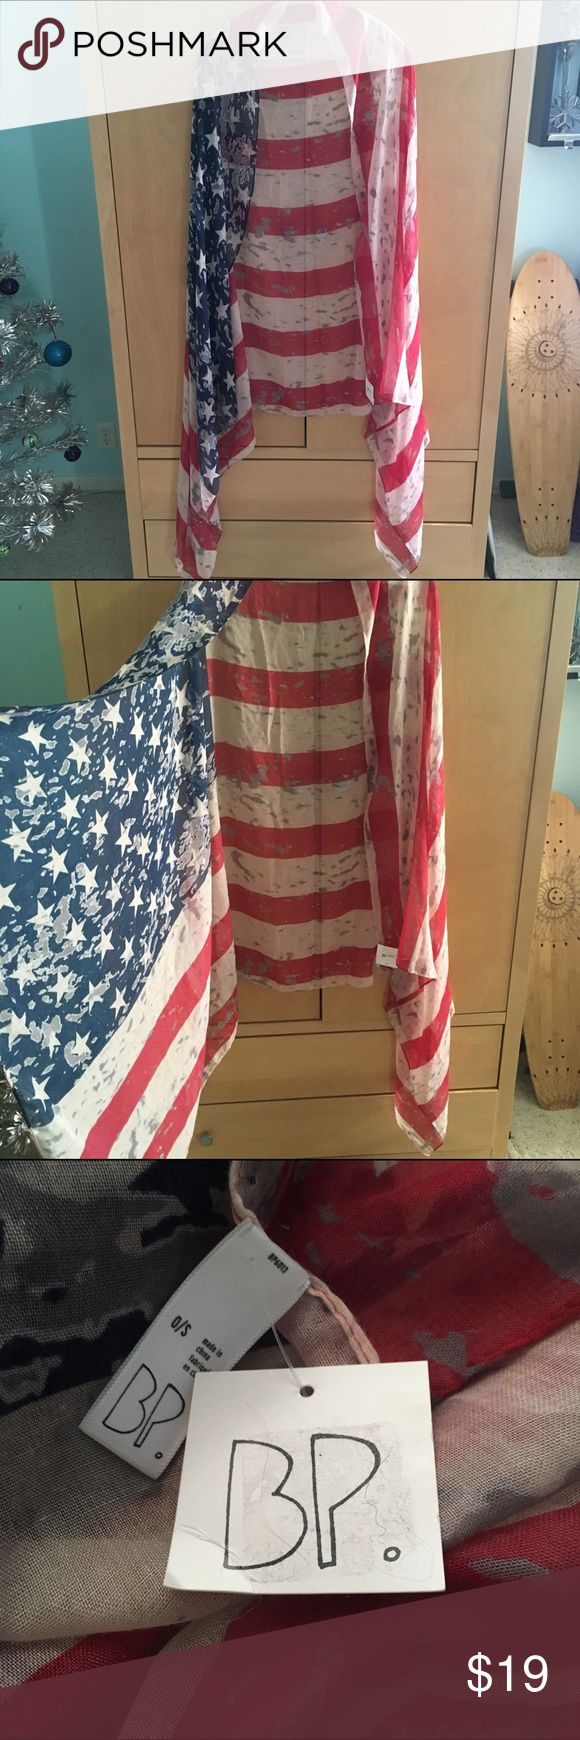 Large American flag scarf  In the first photo I have it draped over a hanger, showing one of the ways you could wear it. It could also be worn as a skirt, coverup dress after swimming, in your hair, or hung up as a decoration in your room!  Perfect condition, no flaws. bp Accessories Scarves & Wraps